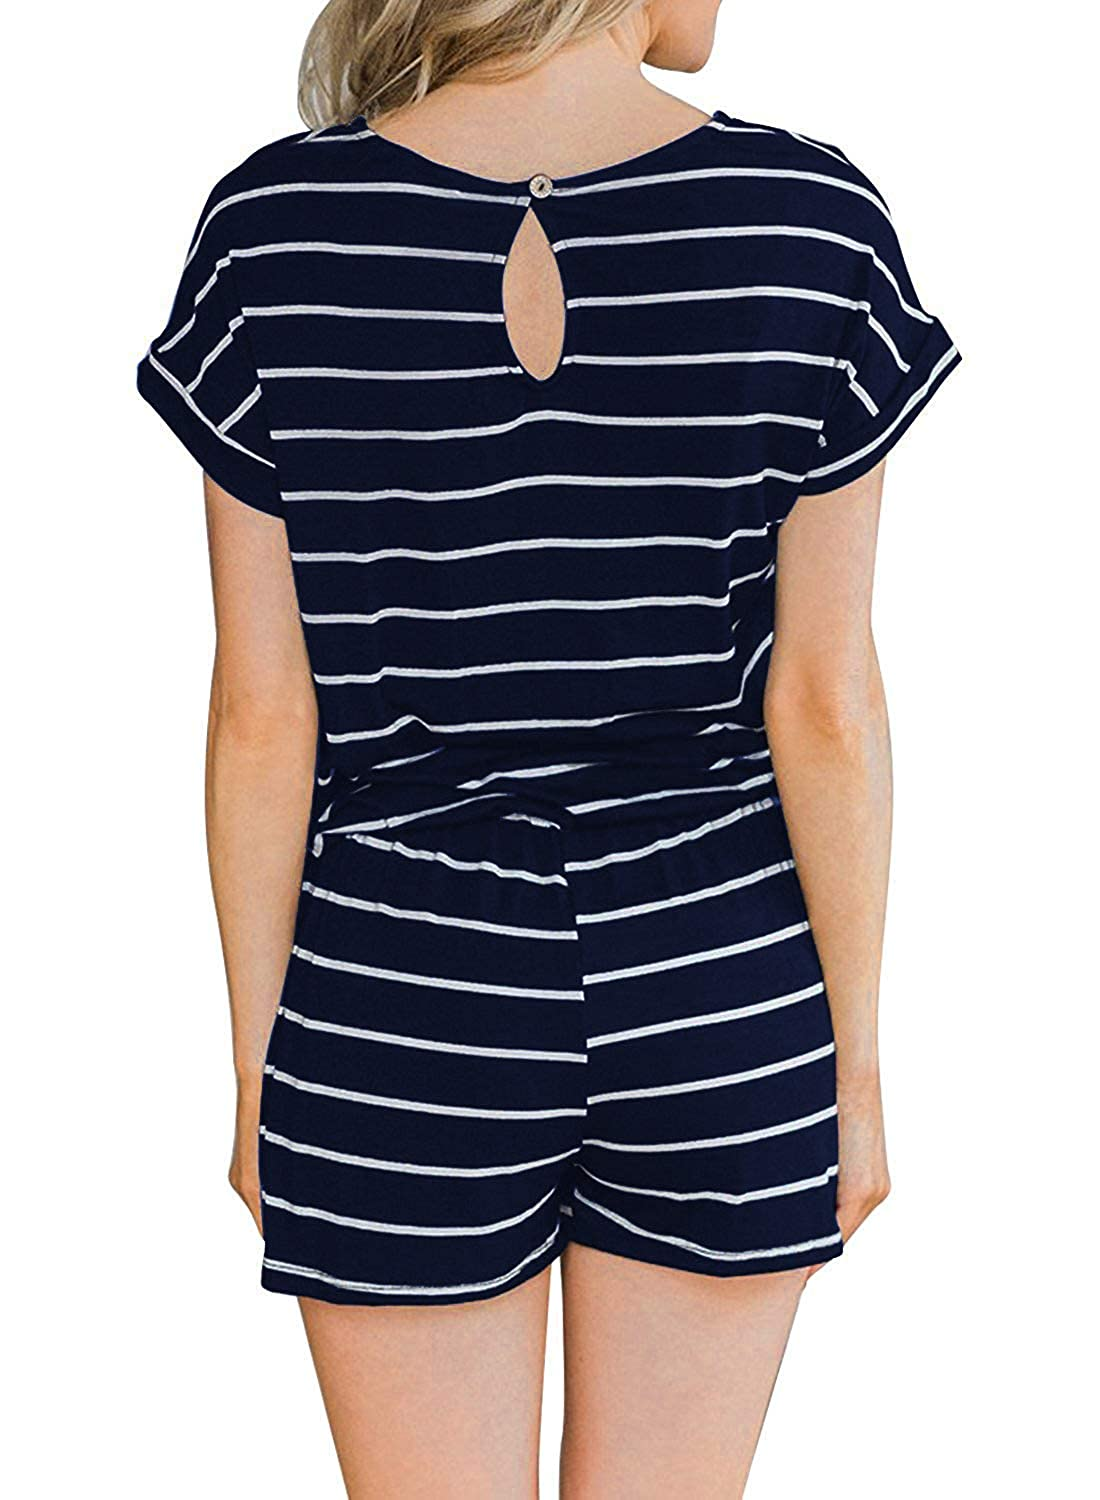 Hount Womens Summer Short Sleeve Romper Casual Loose Stirped Short Rompers Jumpsuits with Pockets